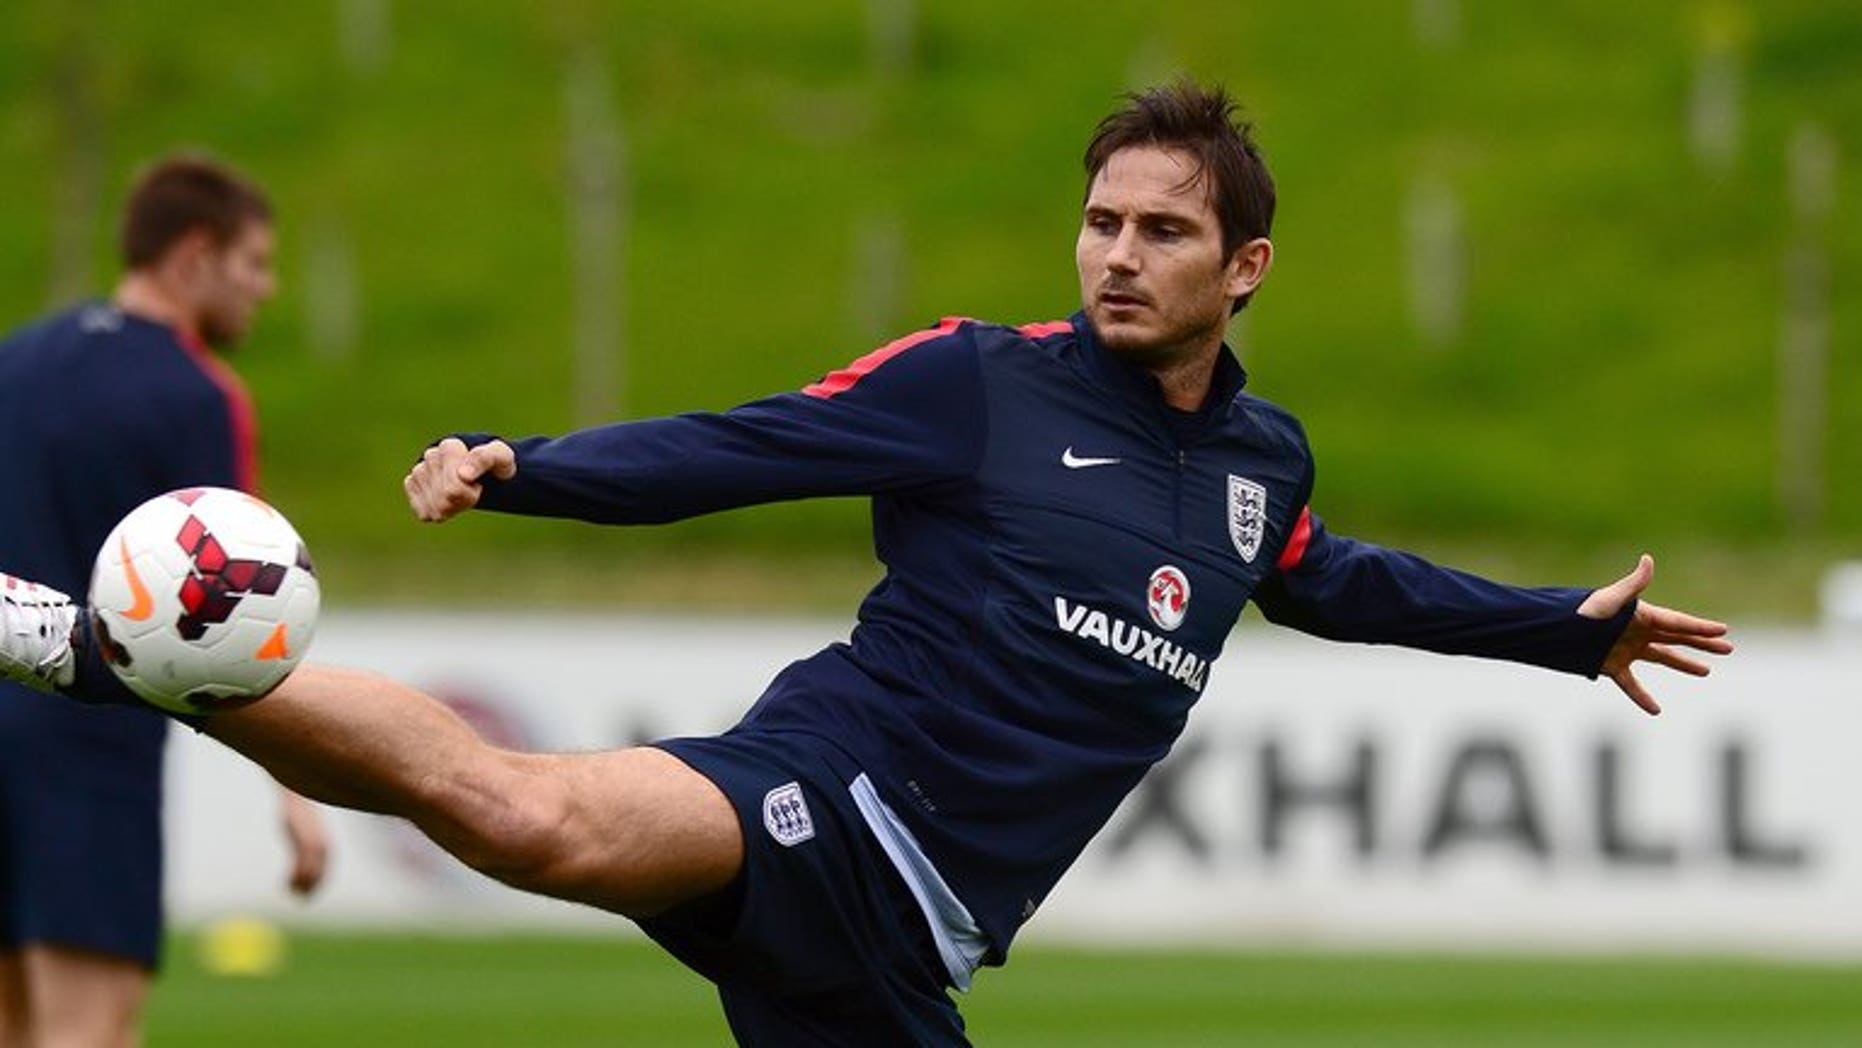 England midfielder Frank Lampard kicks the ball in Burton-on-Trent, central England, on September 3, 2013.